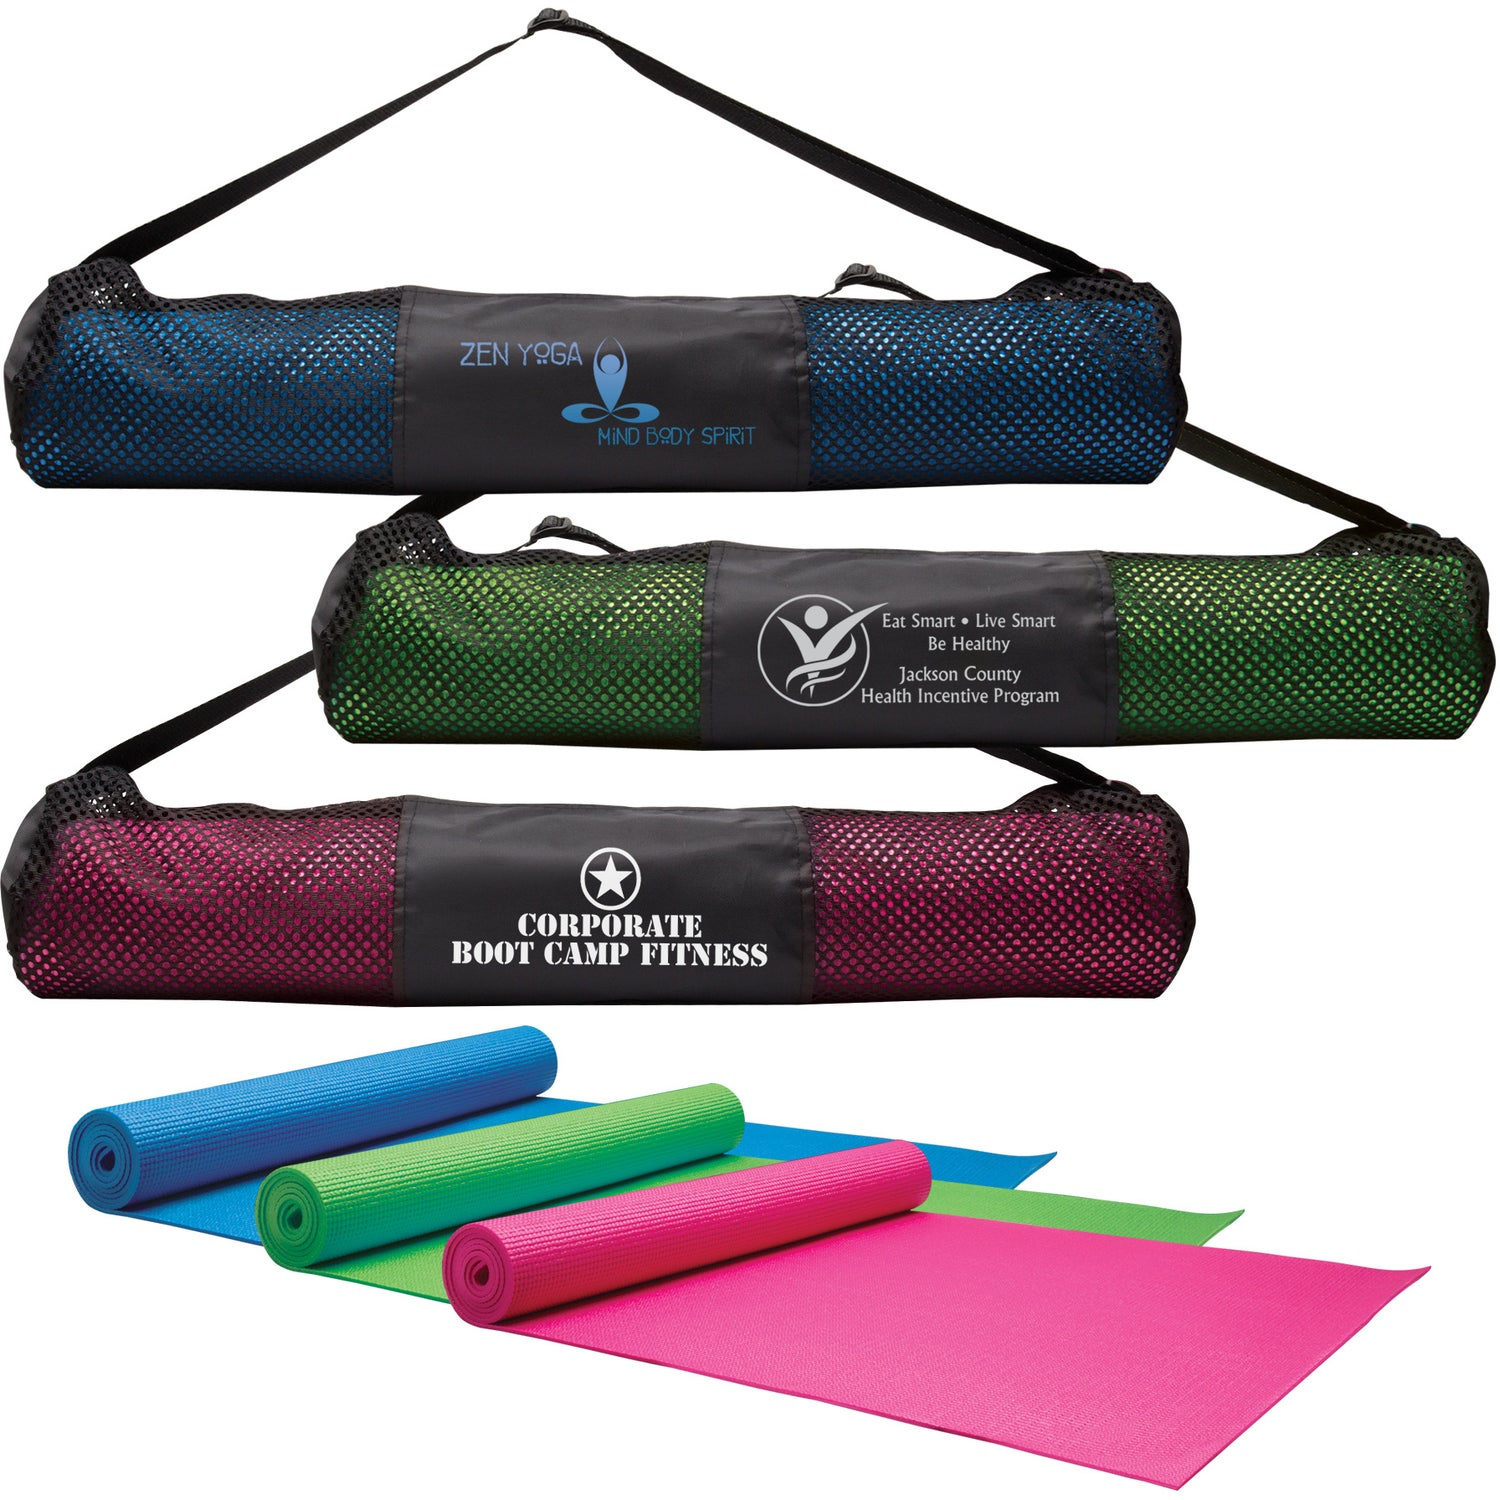 Yoga Fitness Mat and Carrying Case